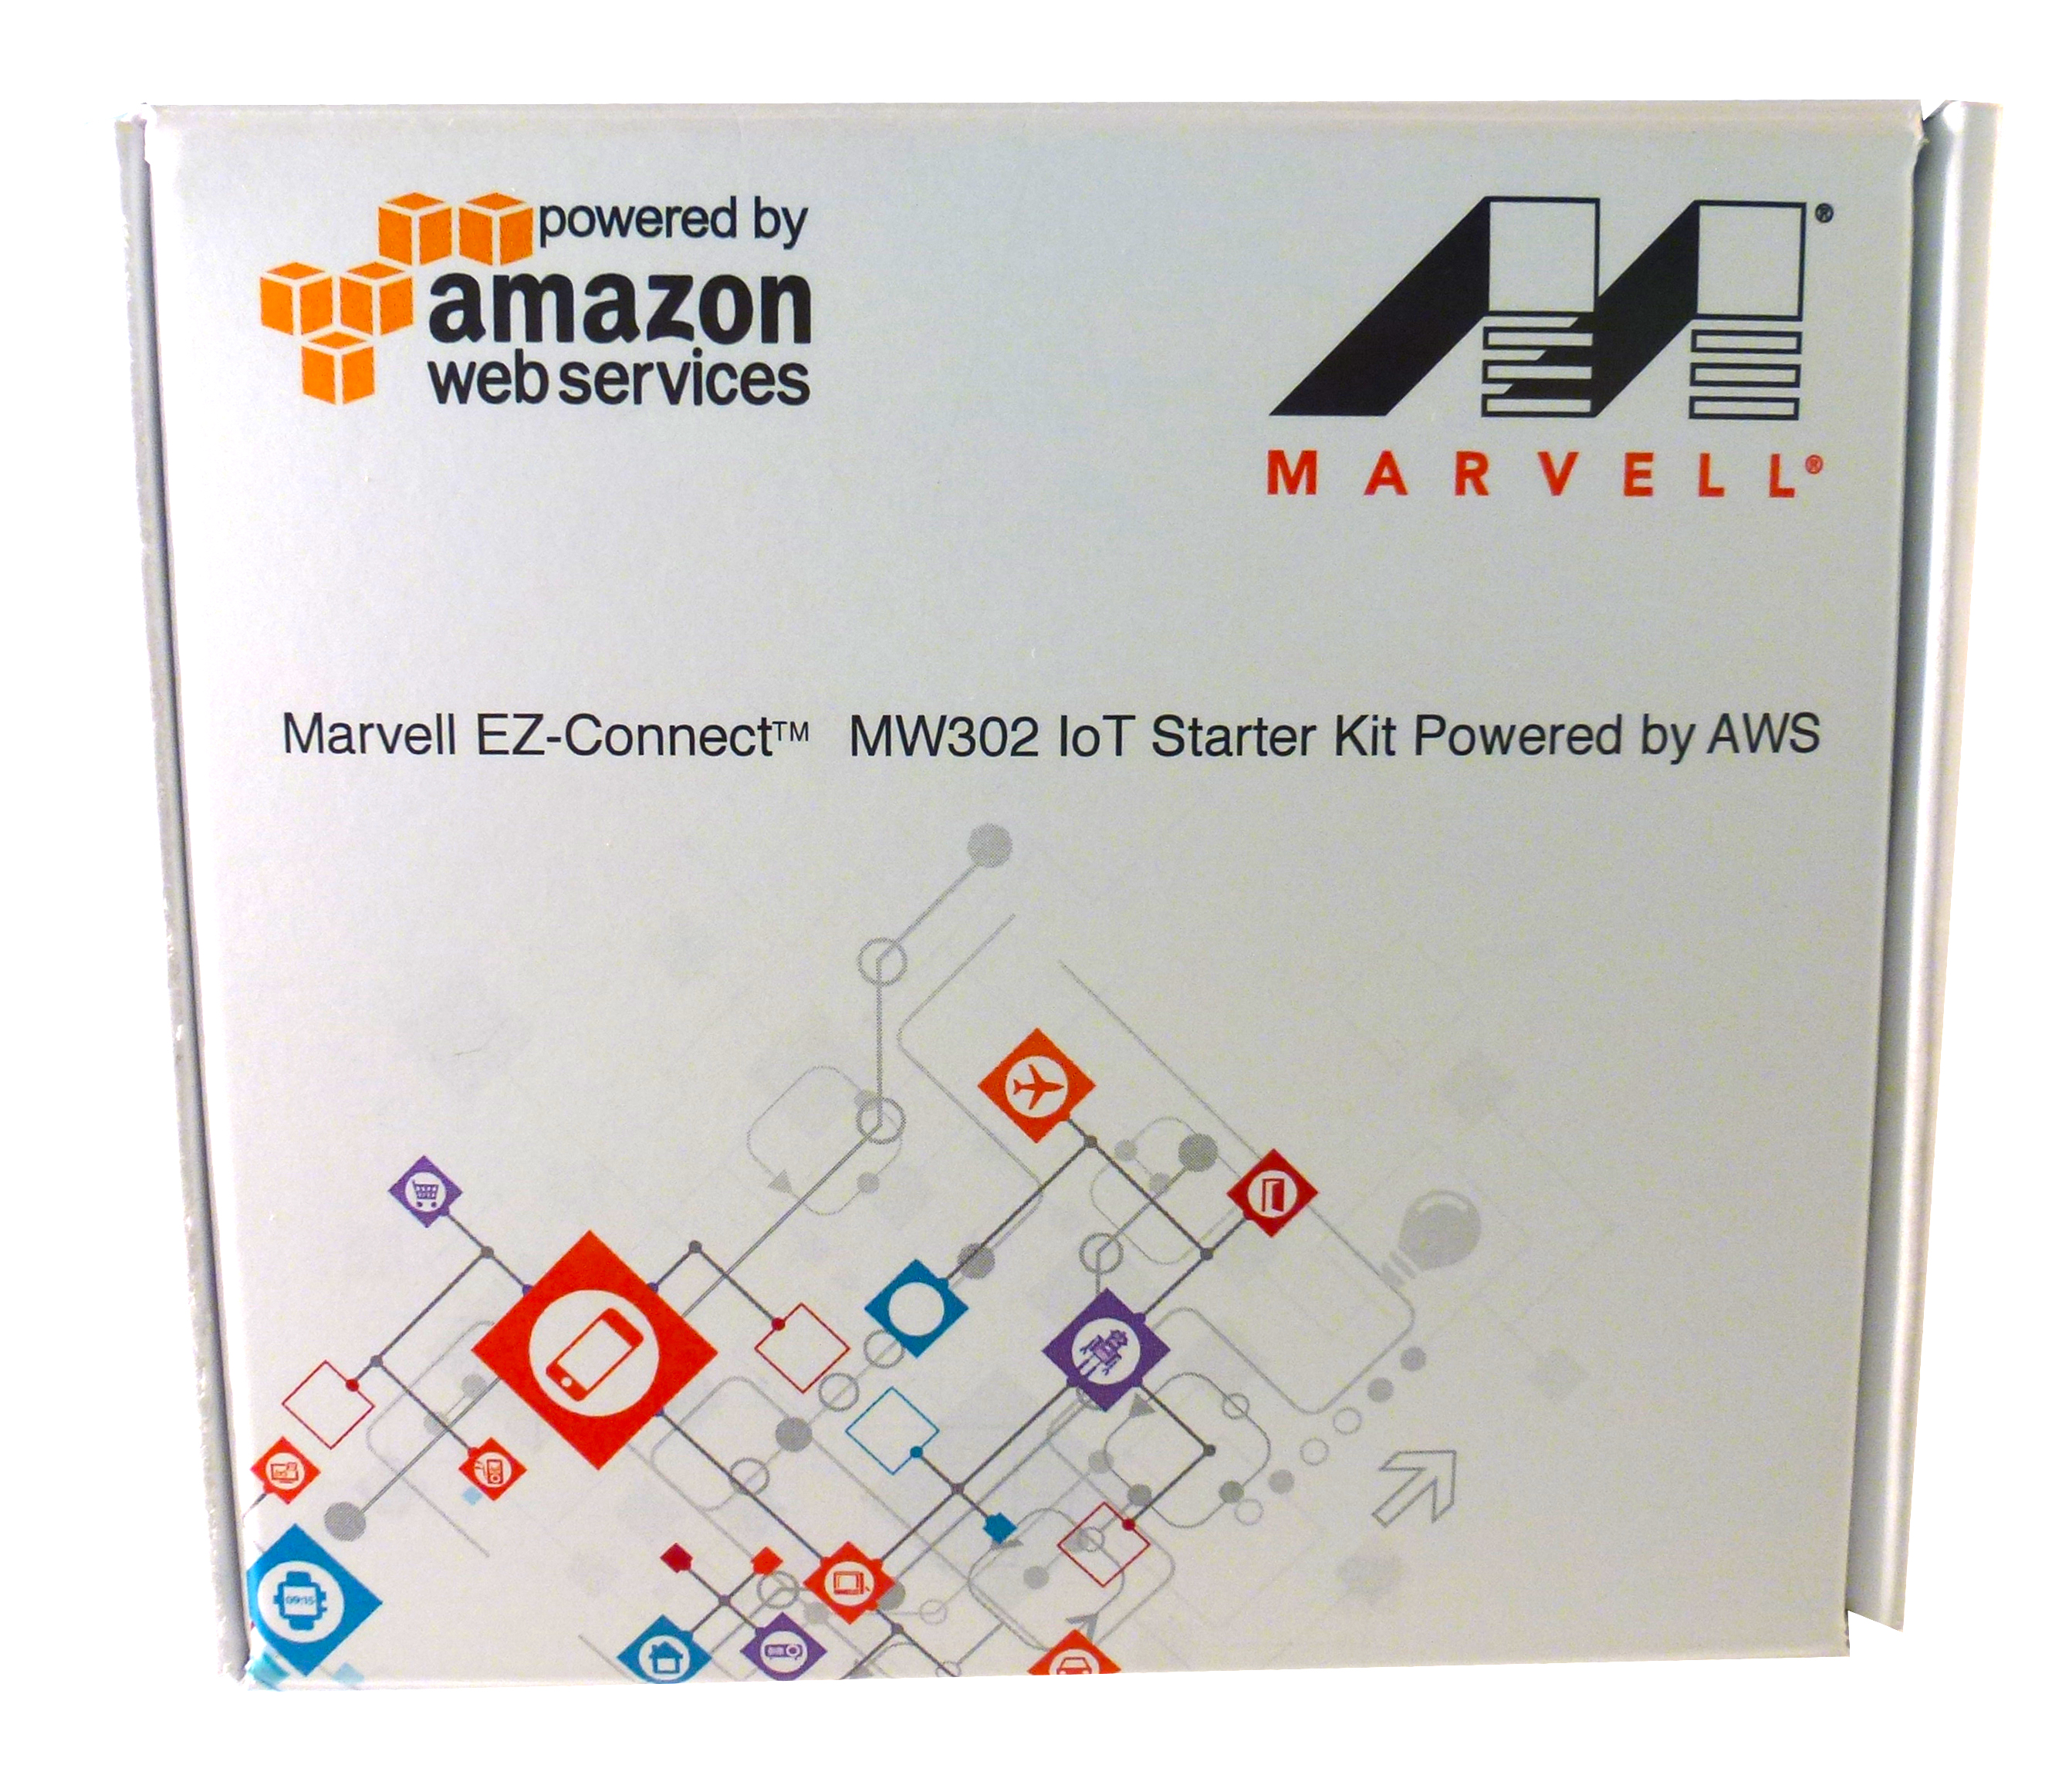 Marvell Introduces the Marvell EZ-Connect MW302 IoT Starter